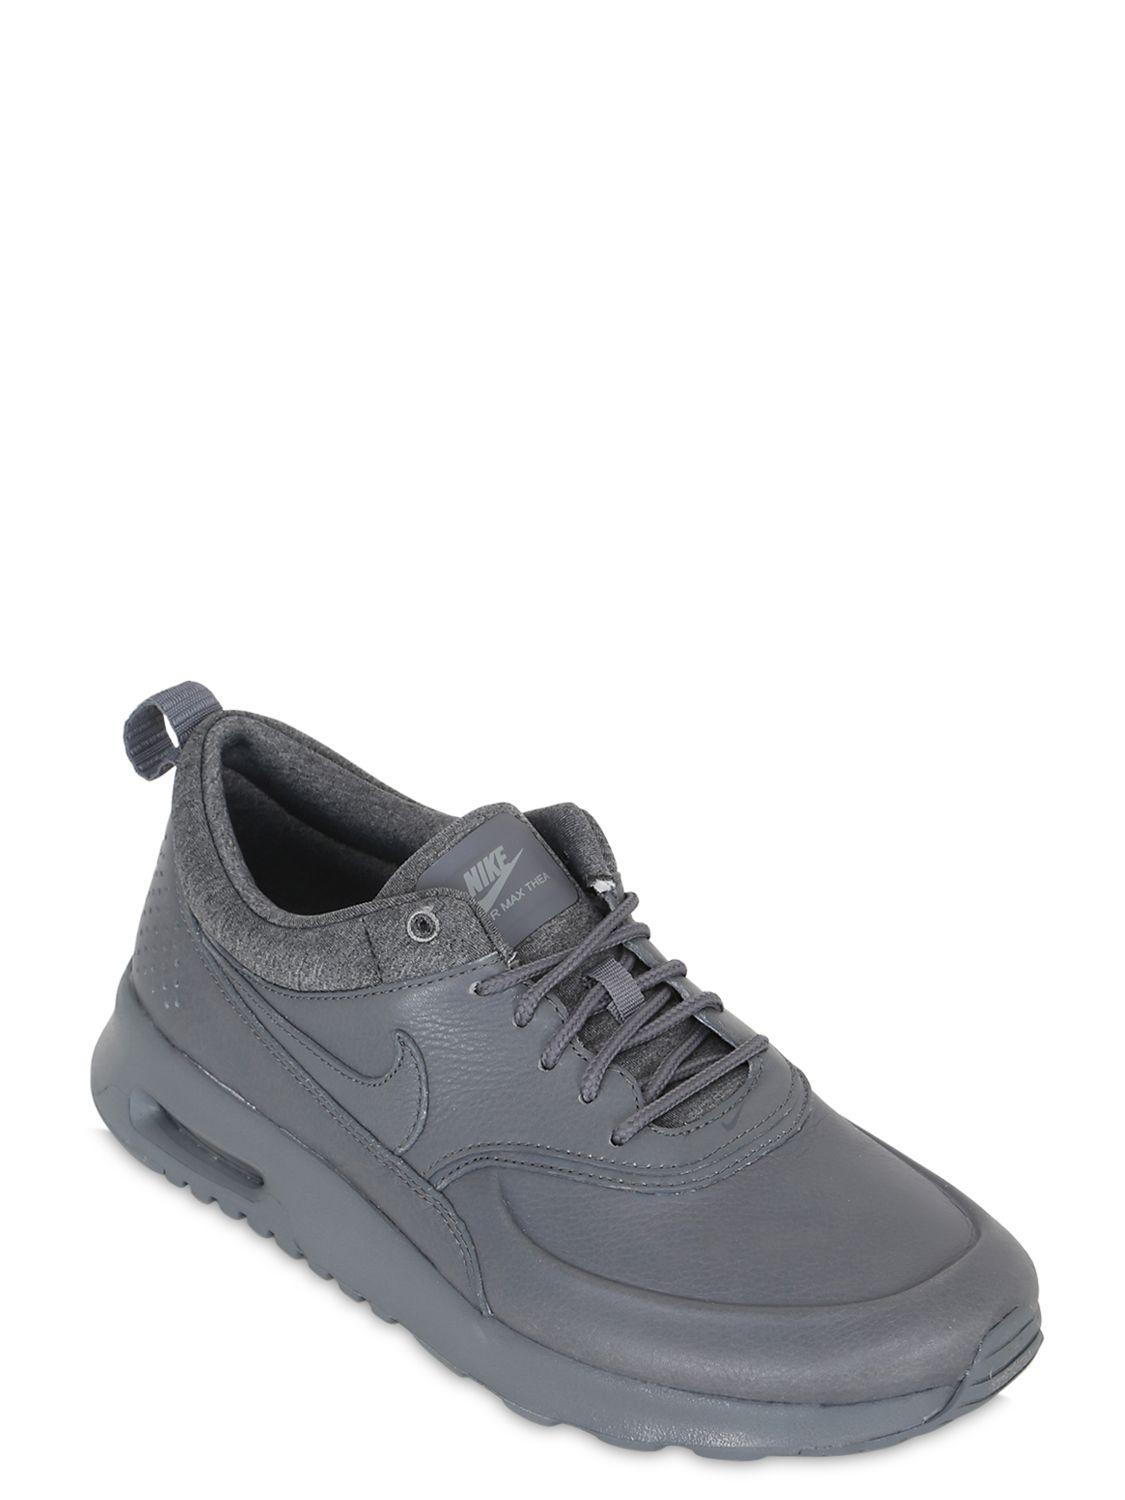 5f12efe0209e2 Lyst - Nike Air Max Thea Pinnacle Leather Sneakers in Gray